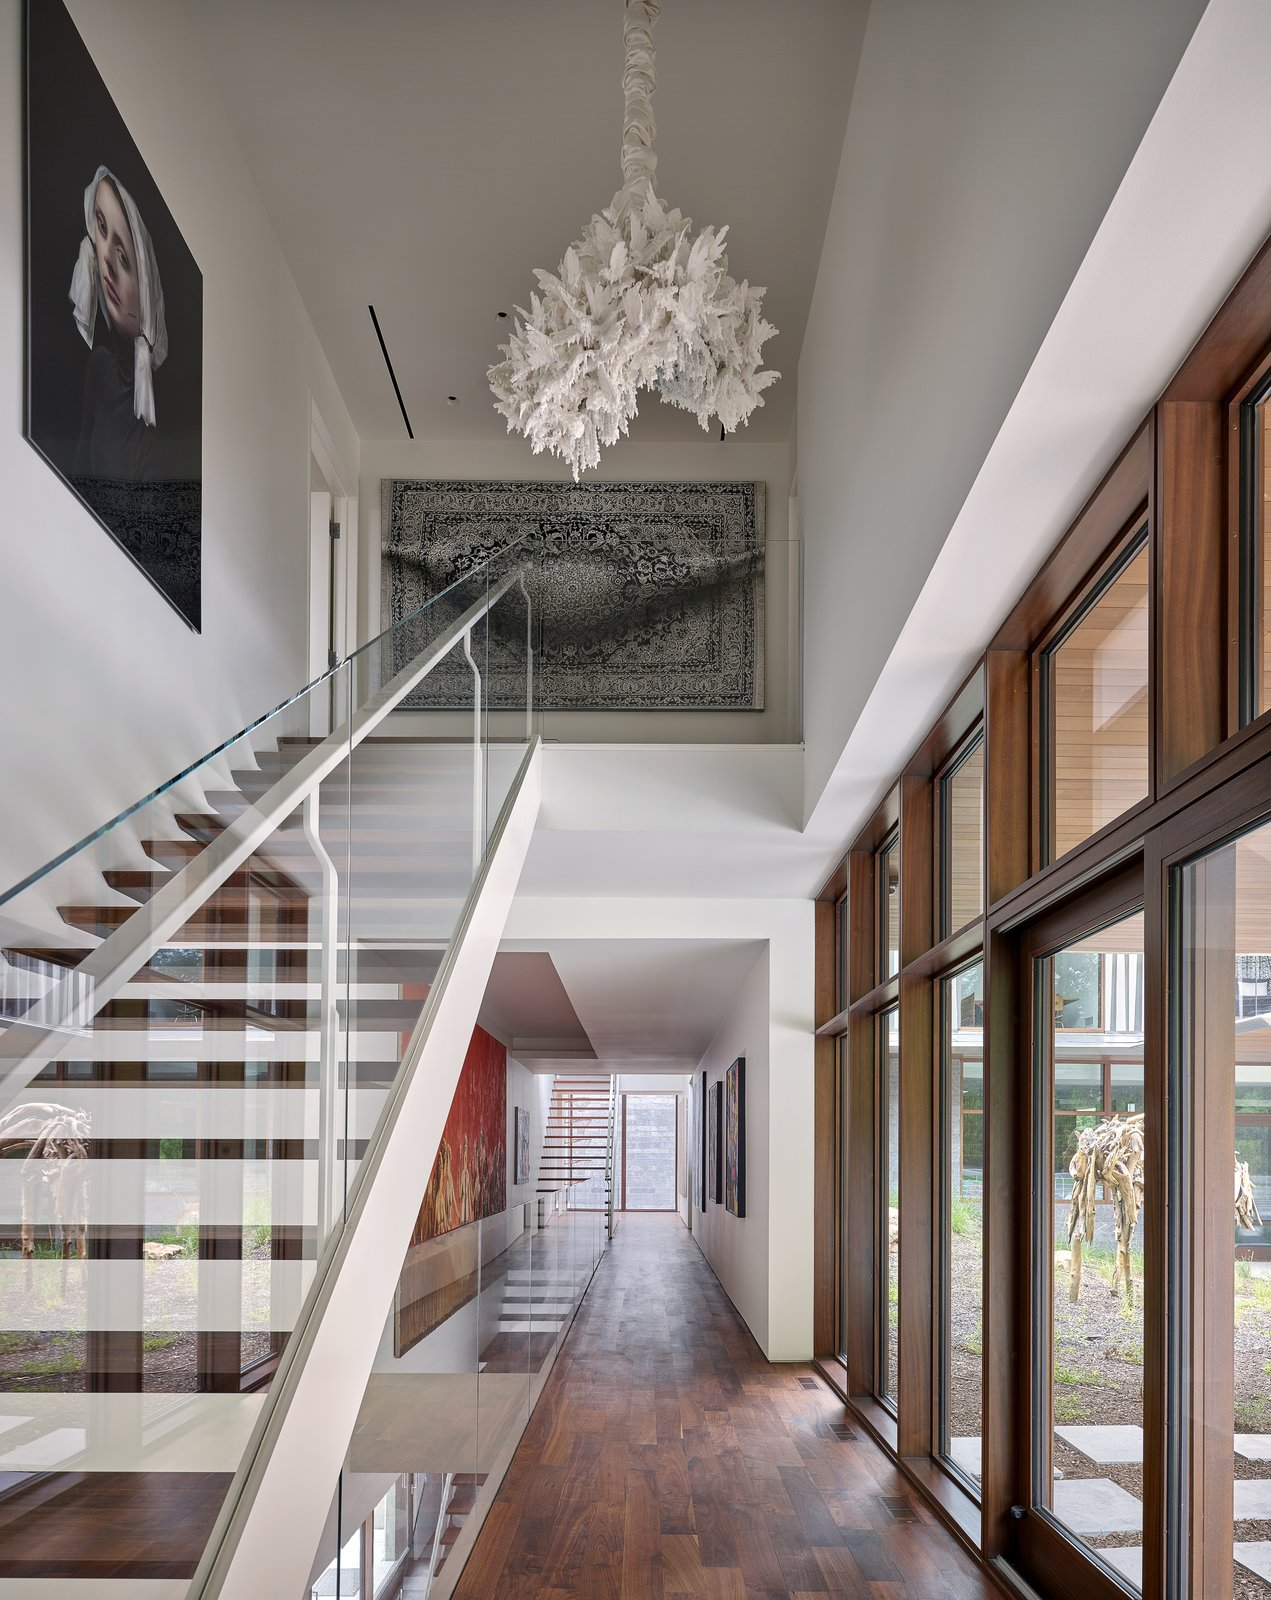 """Staircase, Glass Railing, Wood Tread, and Metal Railing Porosity and transparency define the """"arteries"""" that display artwork, connect the floors, and reveal moments of awe.   Photo 3 of 23 in A Luminous, Eco-Friendly Abode Is Completed With its Own Modern Art Gallery from Artery House"""